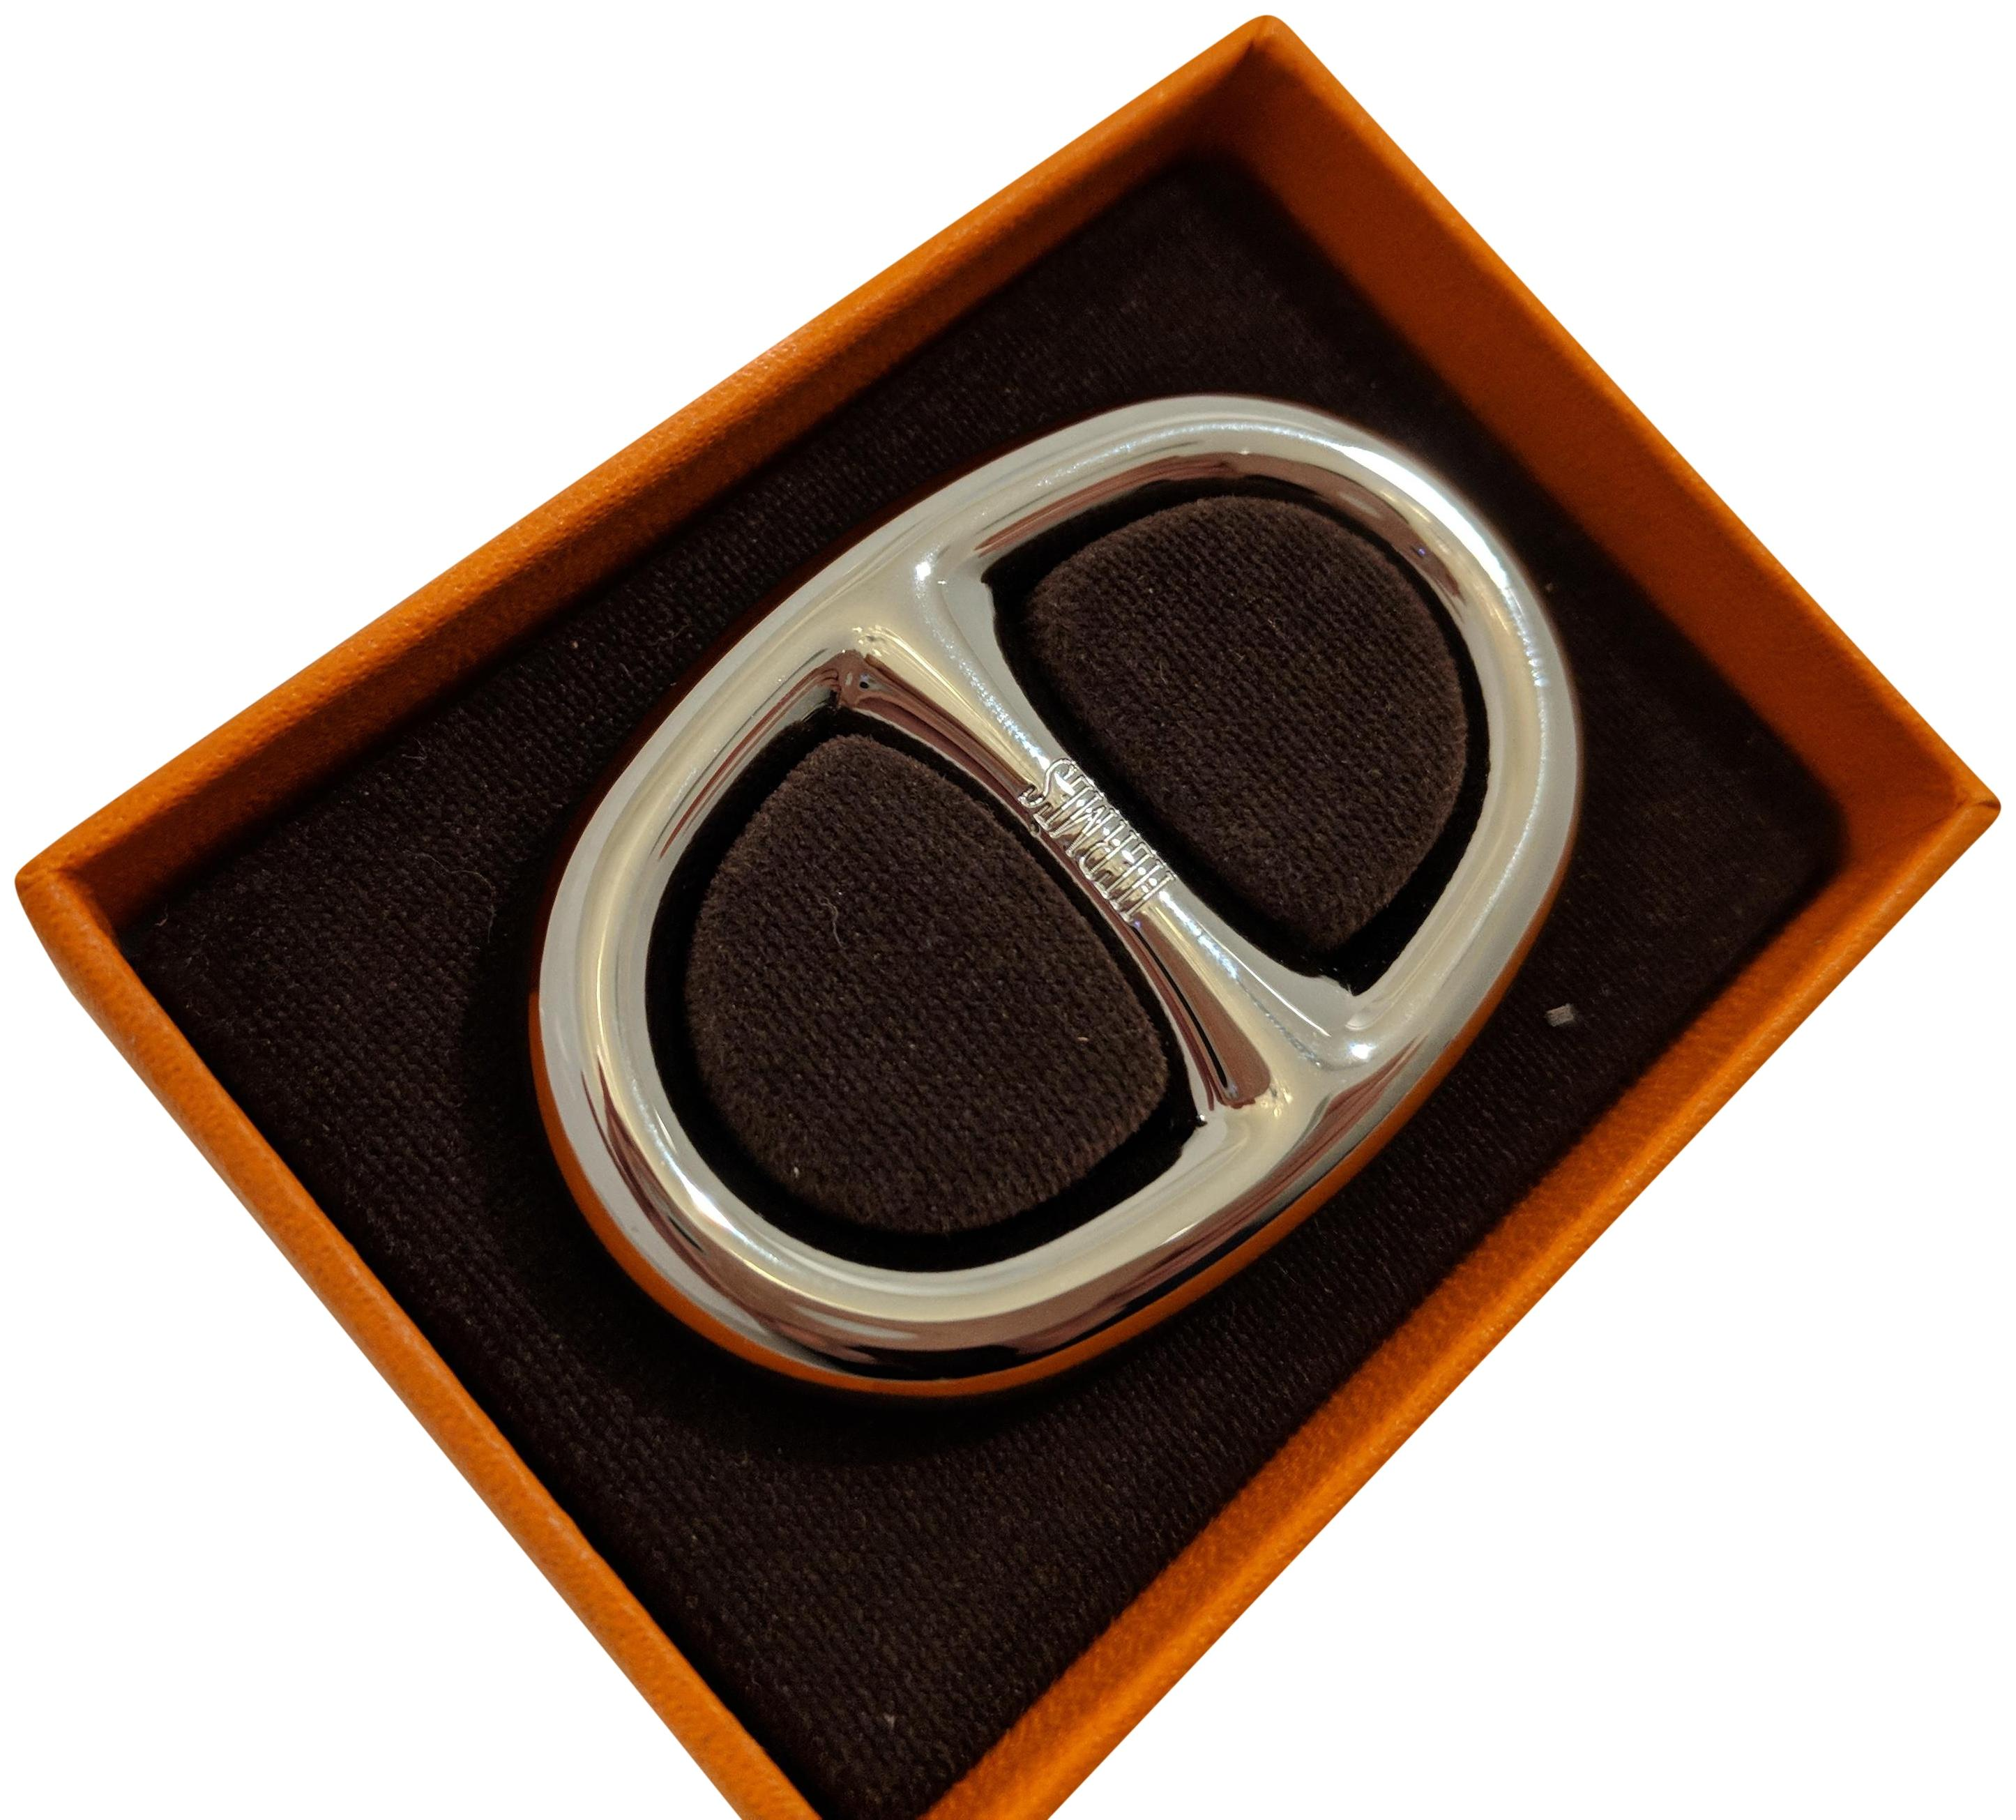 italy hermès scarf ring trio gold plated be755 e322a  coupon for hermès  palladium chaine dancre scarf ring 10bb1 a2233 370dbab3fa7